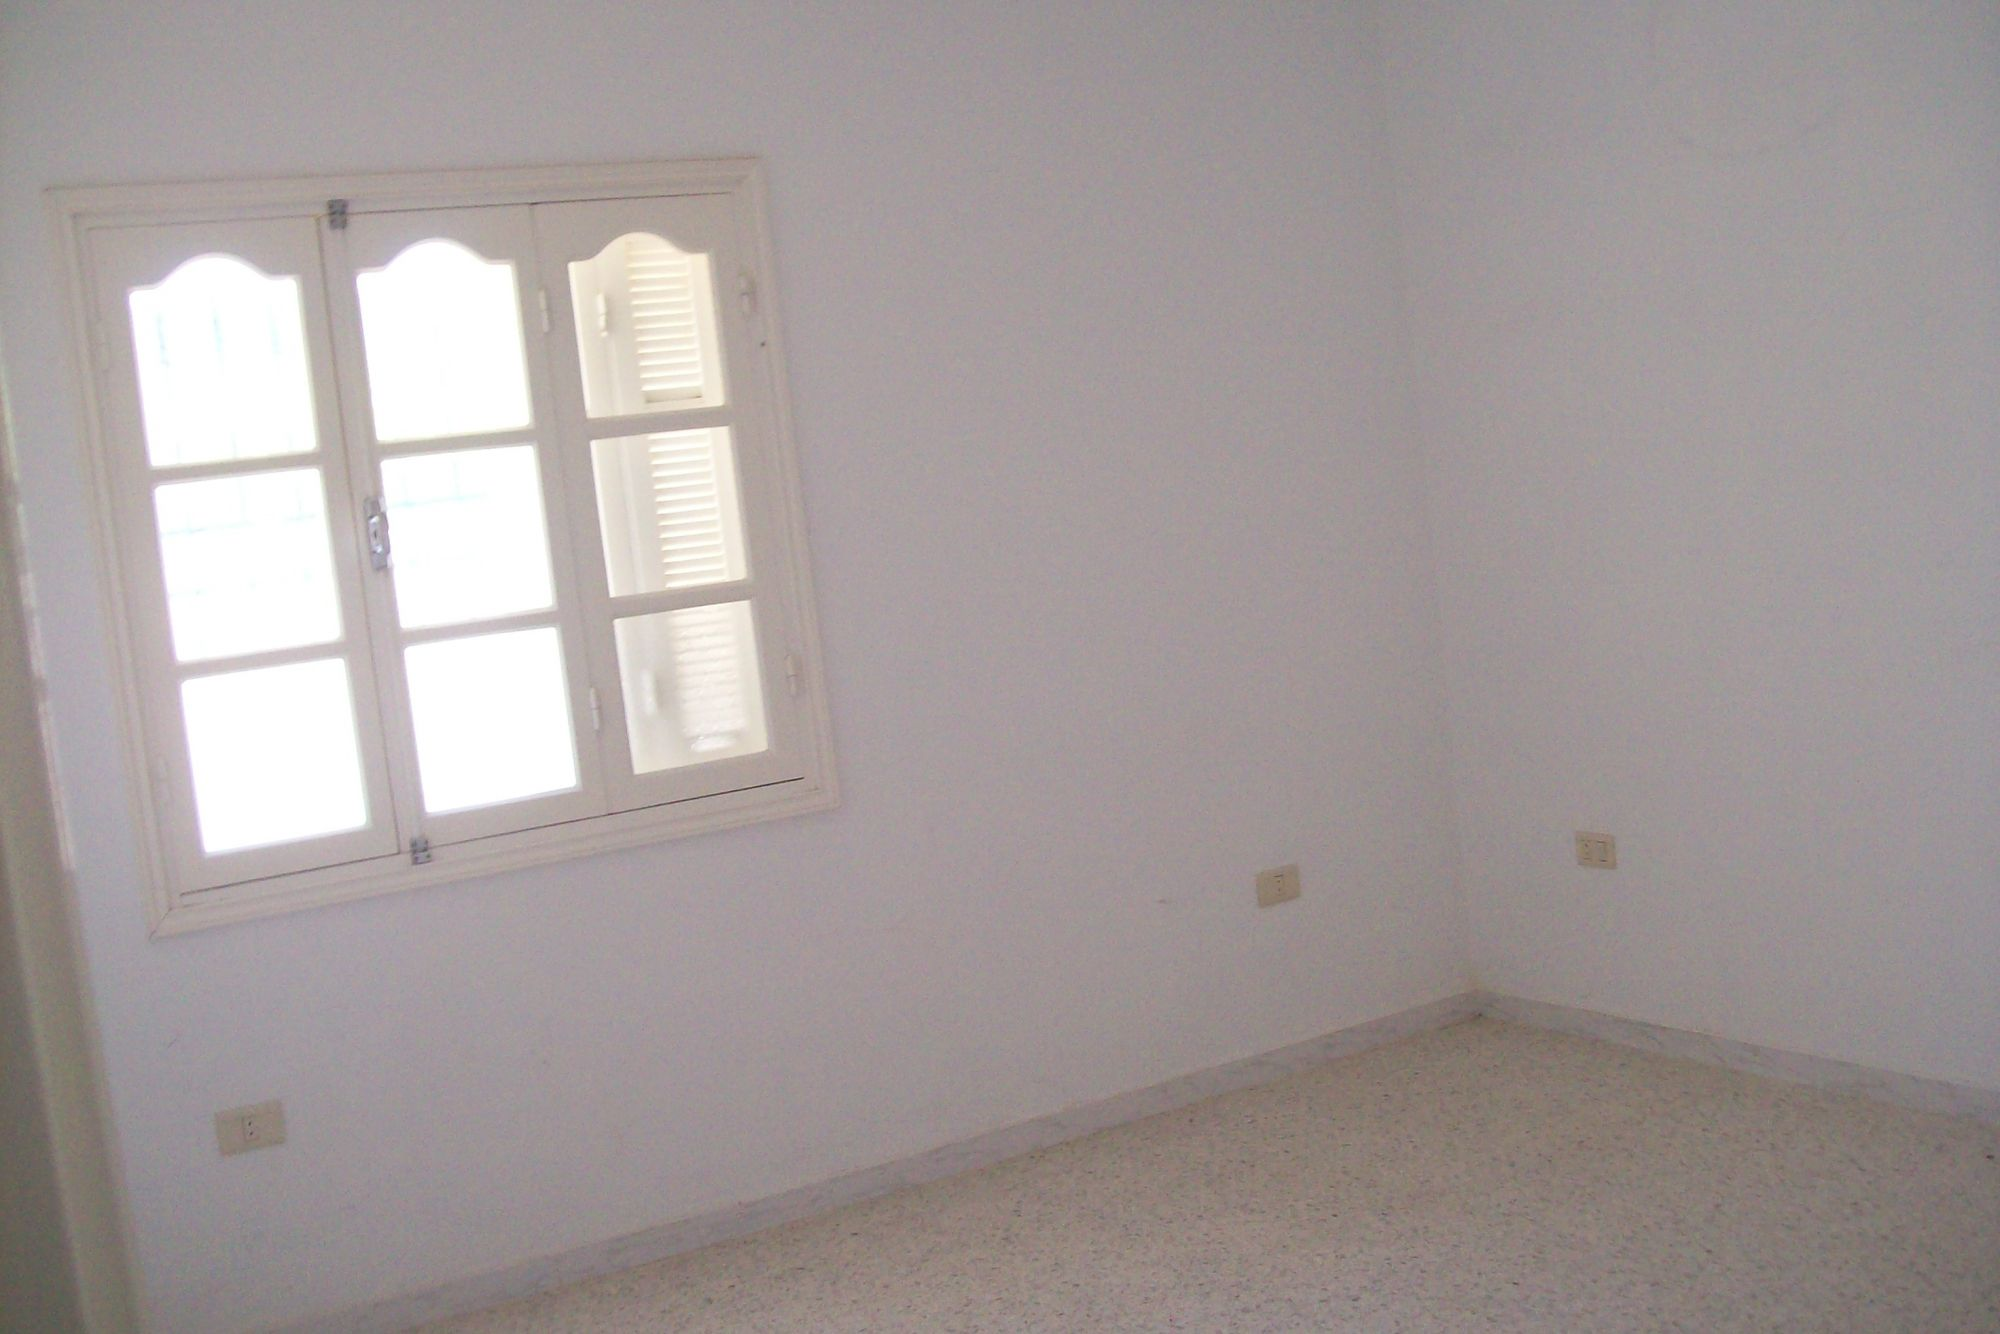 Av appartement au rdc plein centre ville hammamet 135md for Vente appartement rdc